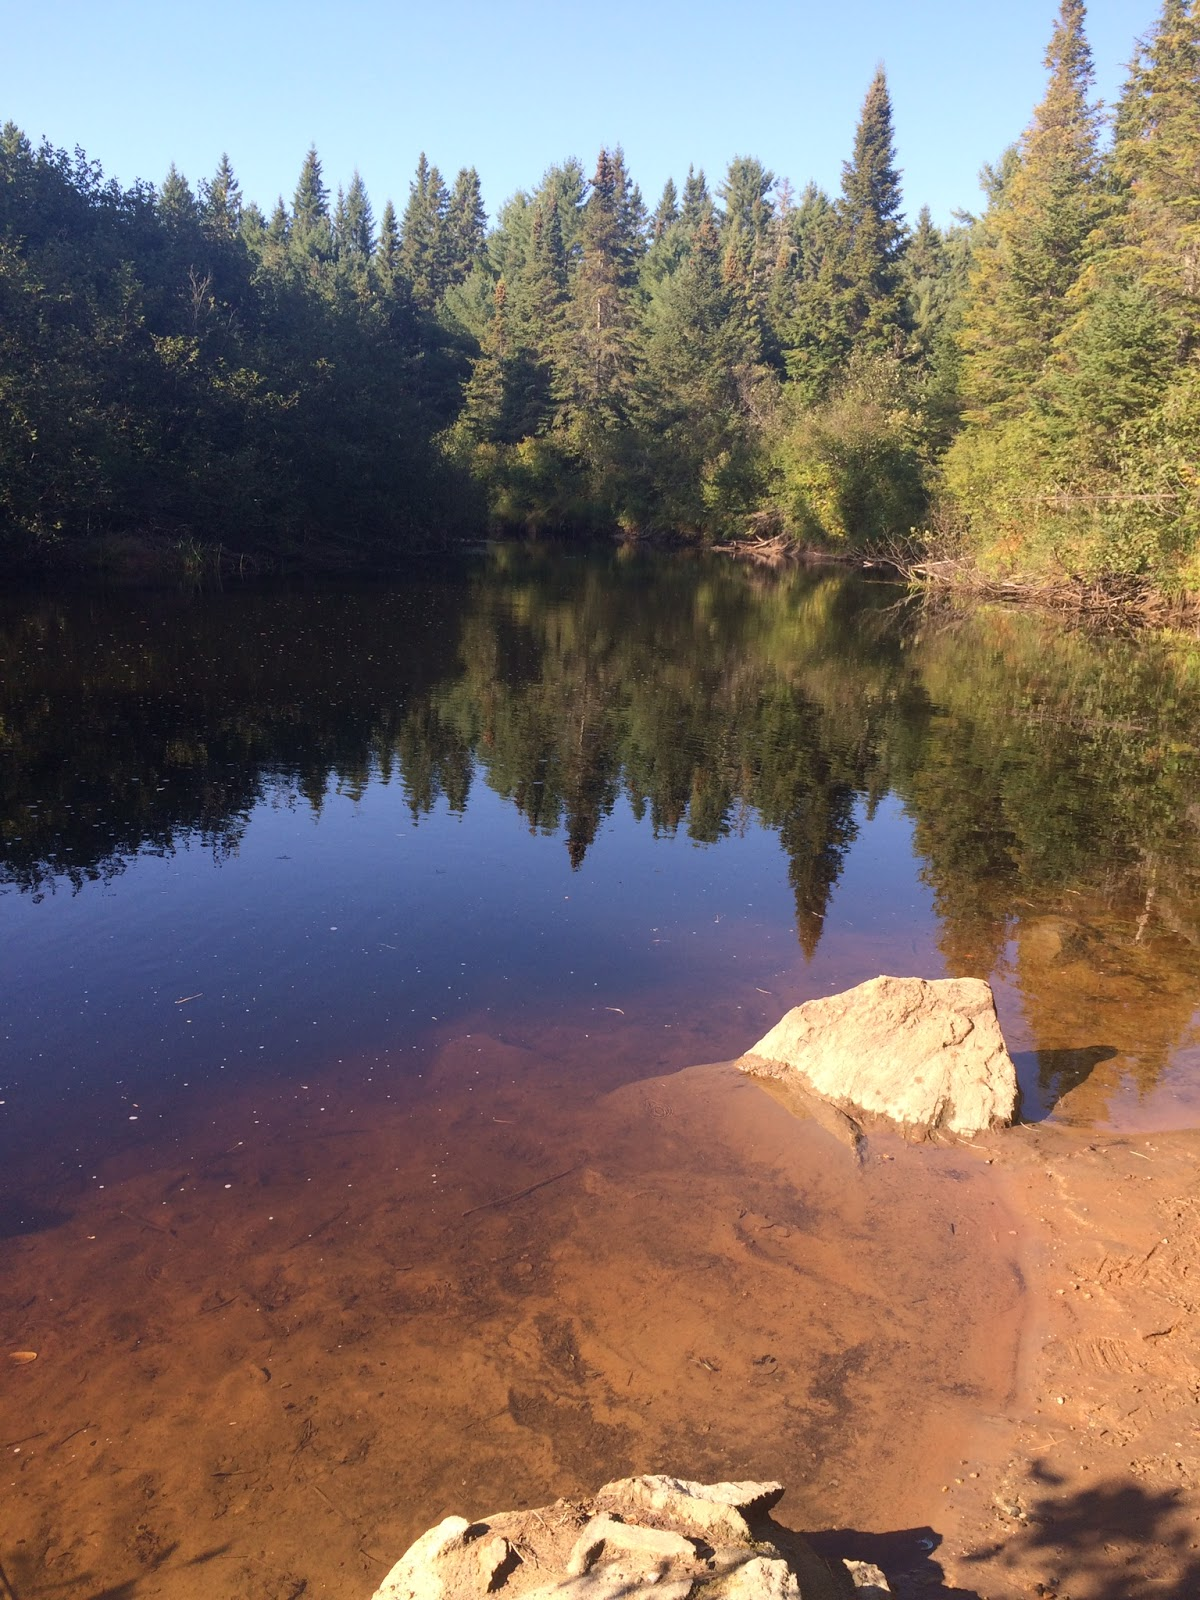 View on a lake in Algonquin Park, Canada